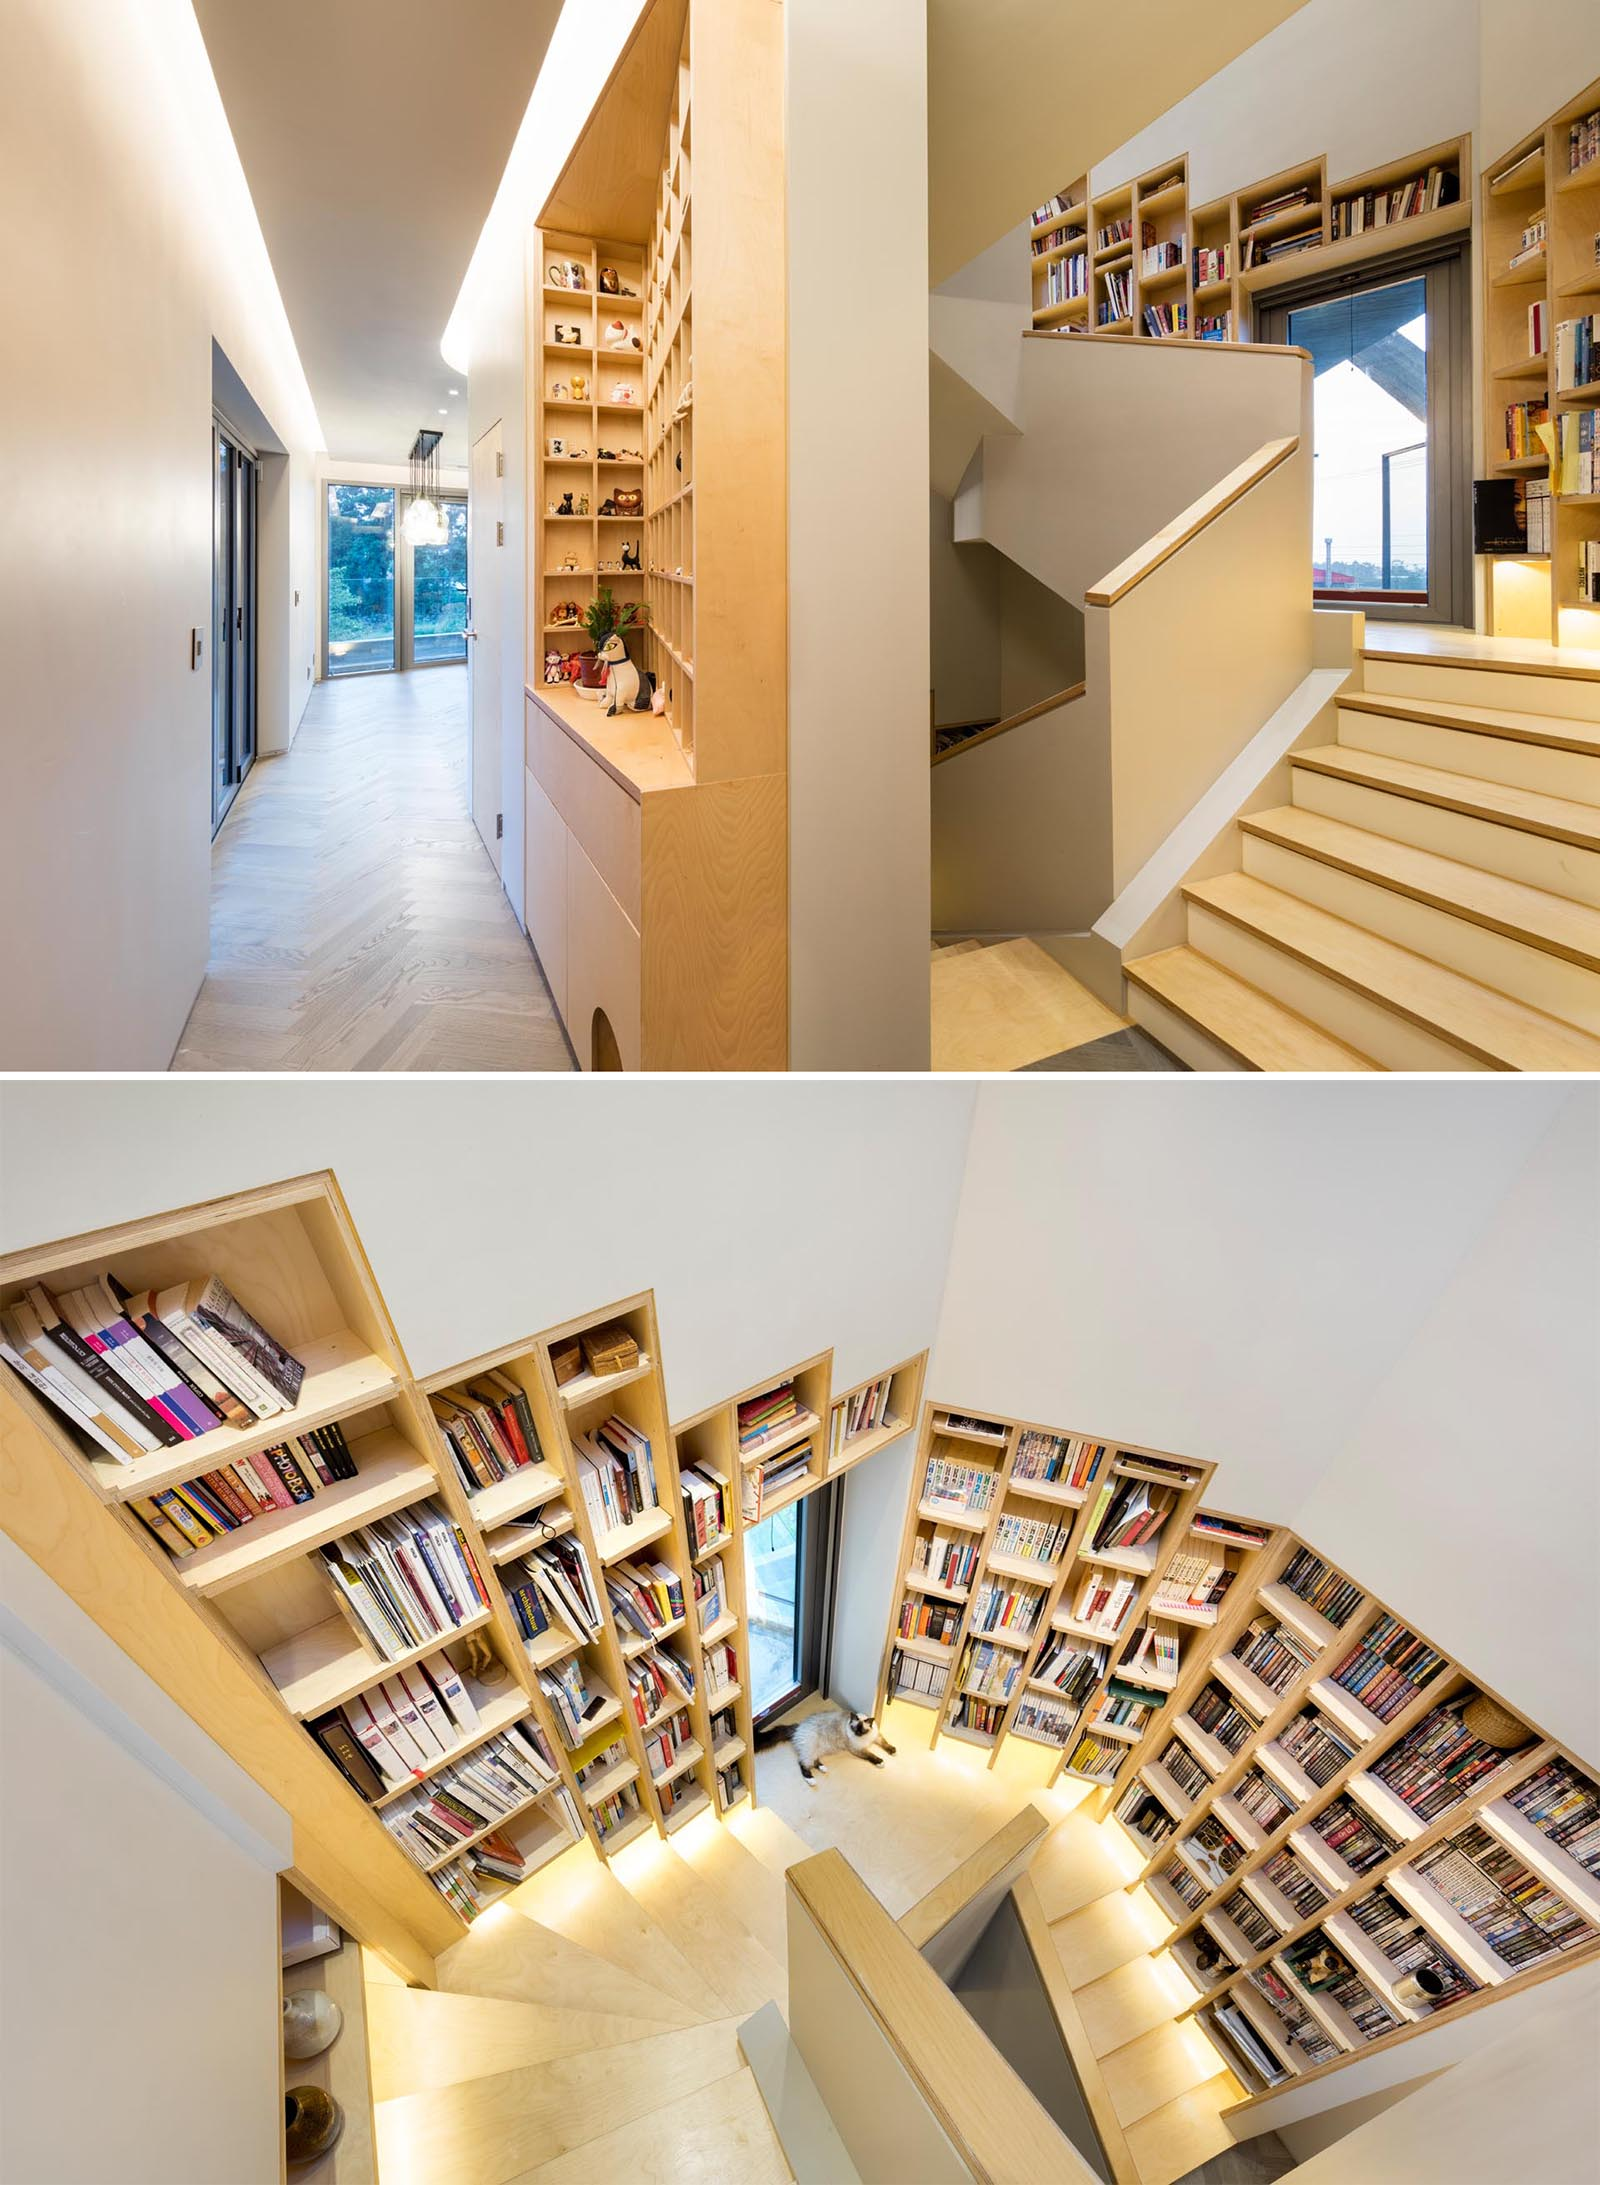 A built-in wood bookshelf that follows the staircase in a modern home.